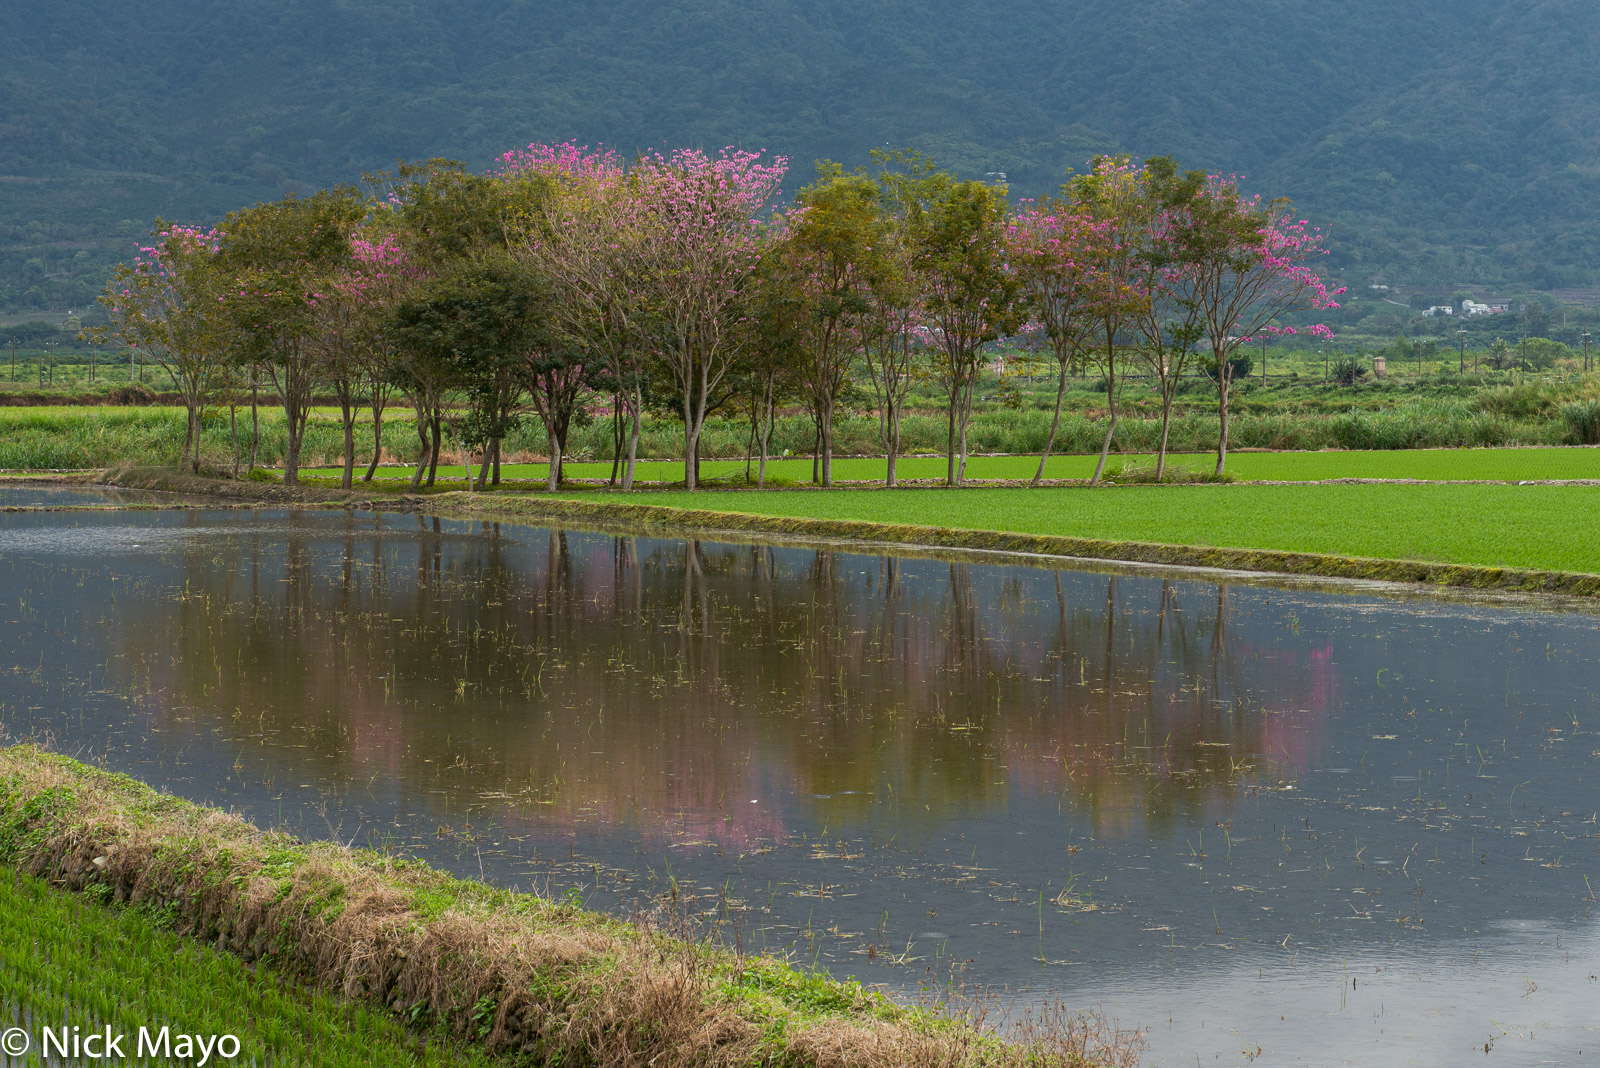 Blossoming cherry trees reflected in a flooded field at Ruisui in Hualien County.